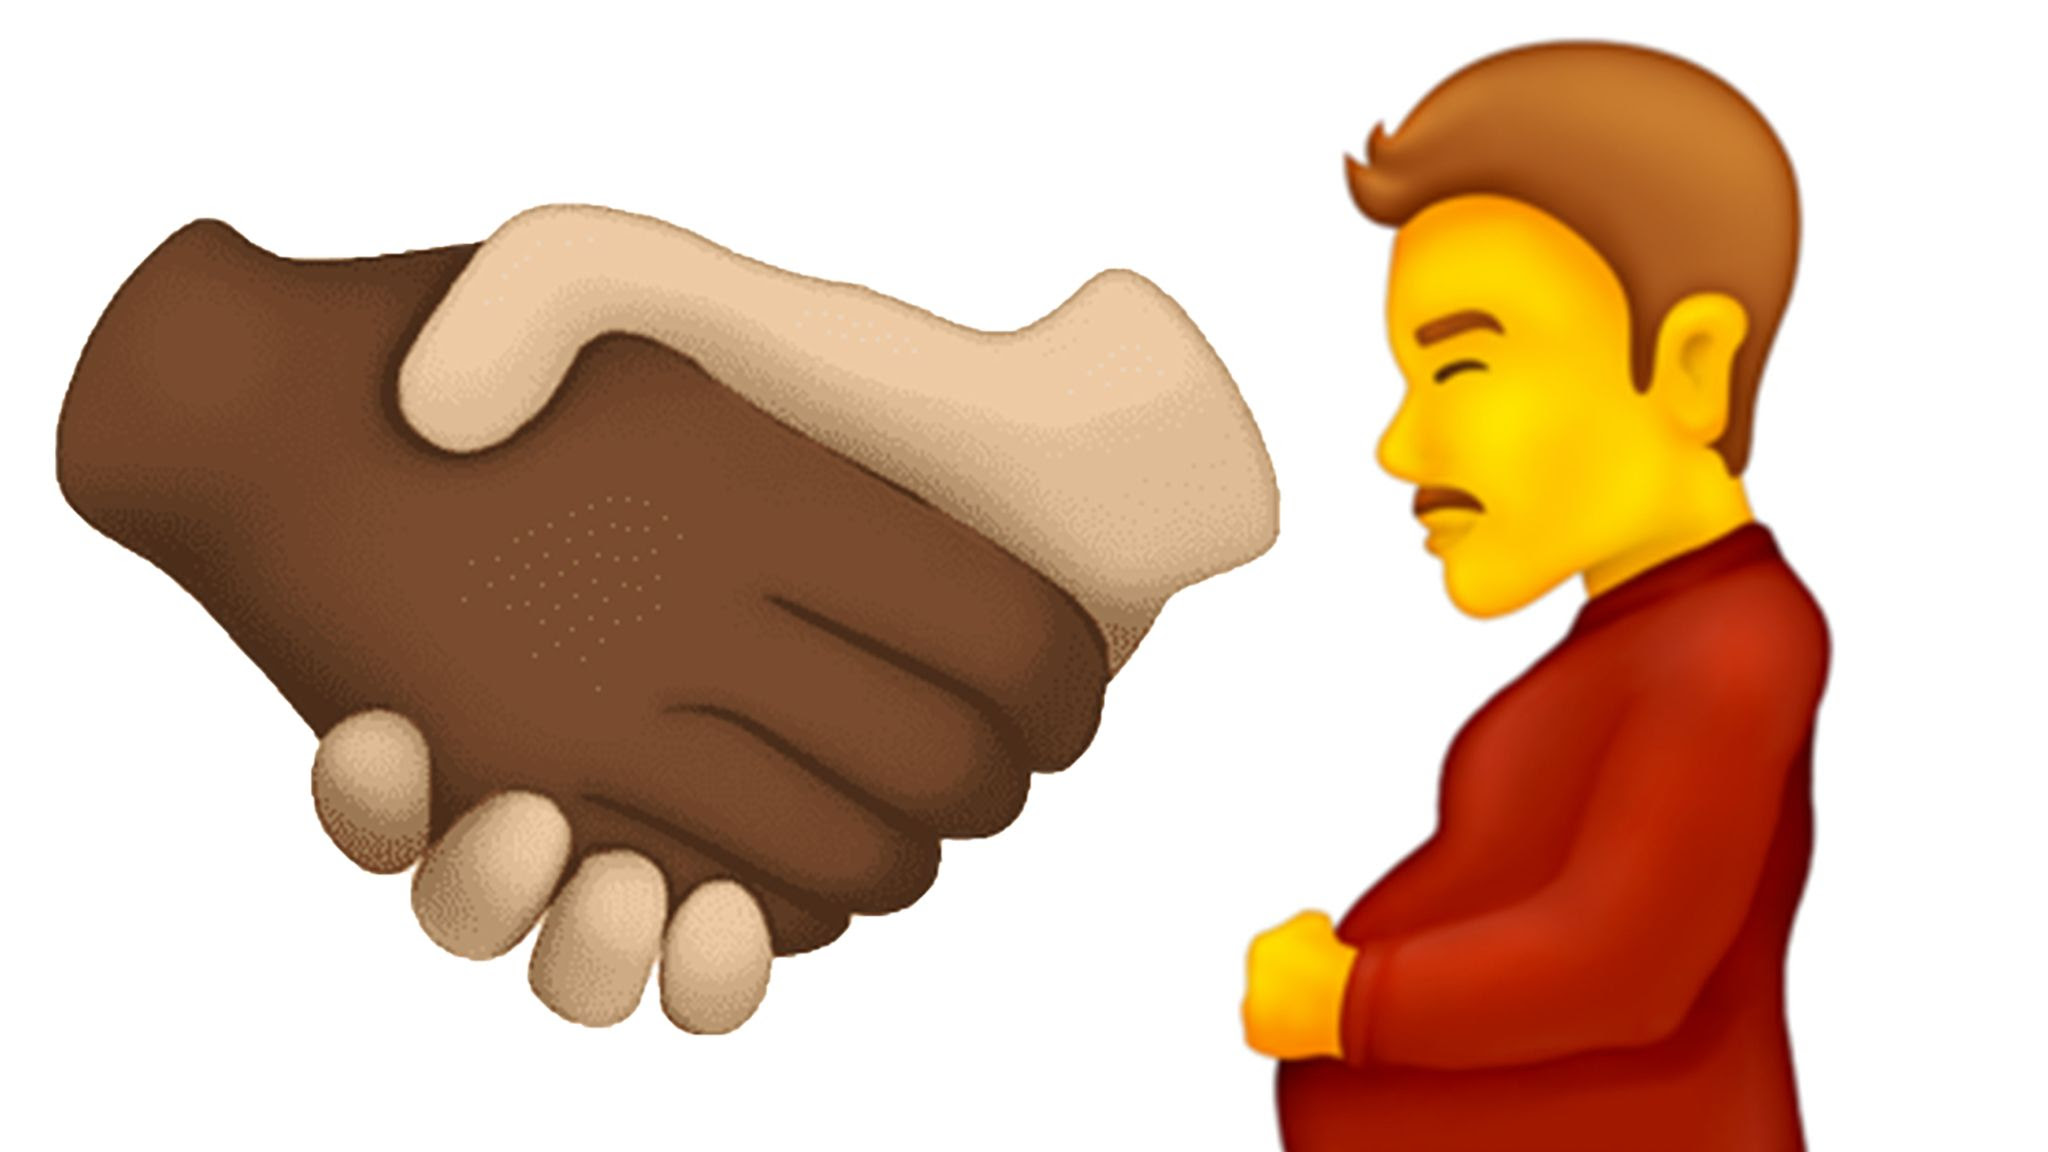 Pregnant man and multiracial handshake among 37 new emojis - what else is on the way?